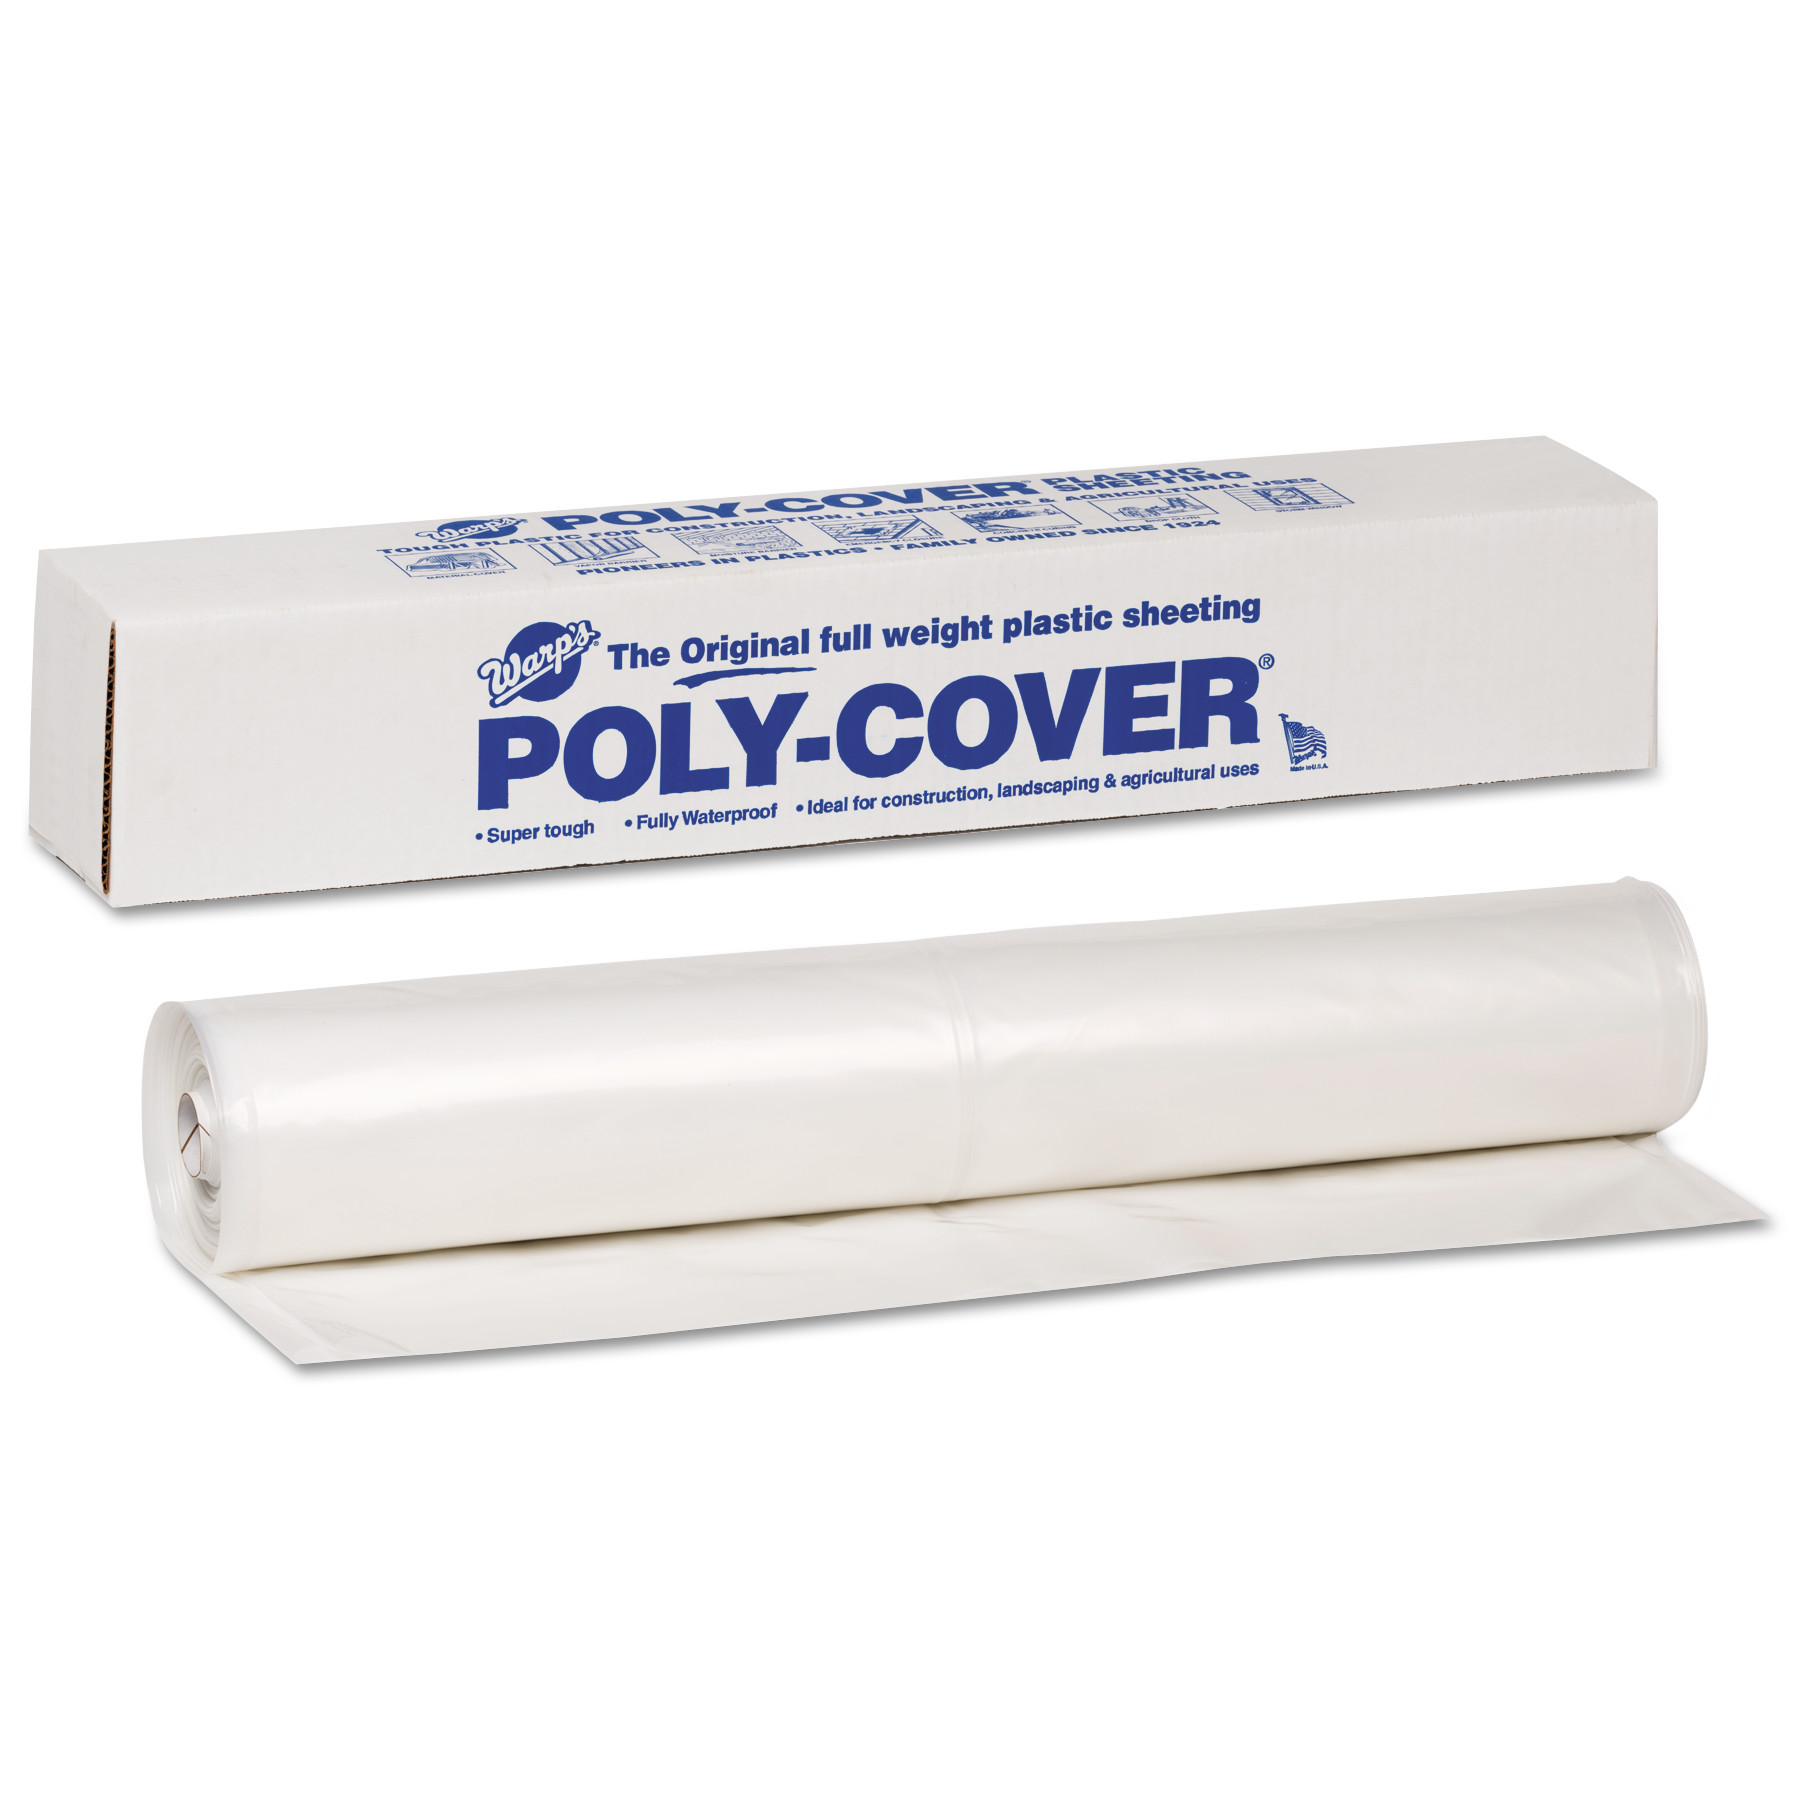 Warp Brothers Poly-Cover Plastic Sheets, 6 Mil, 10 x 100, Clear